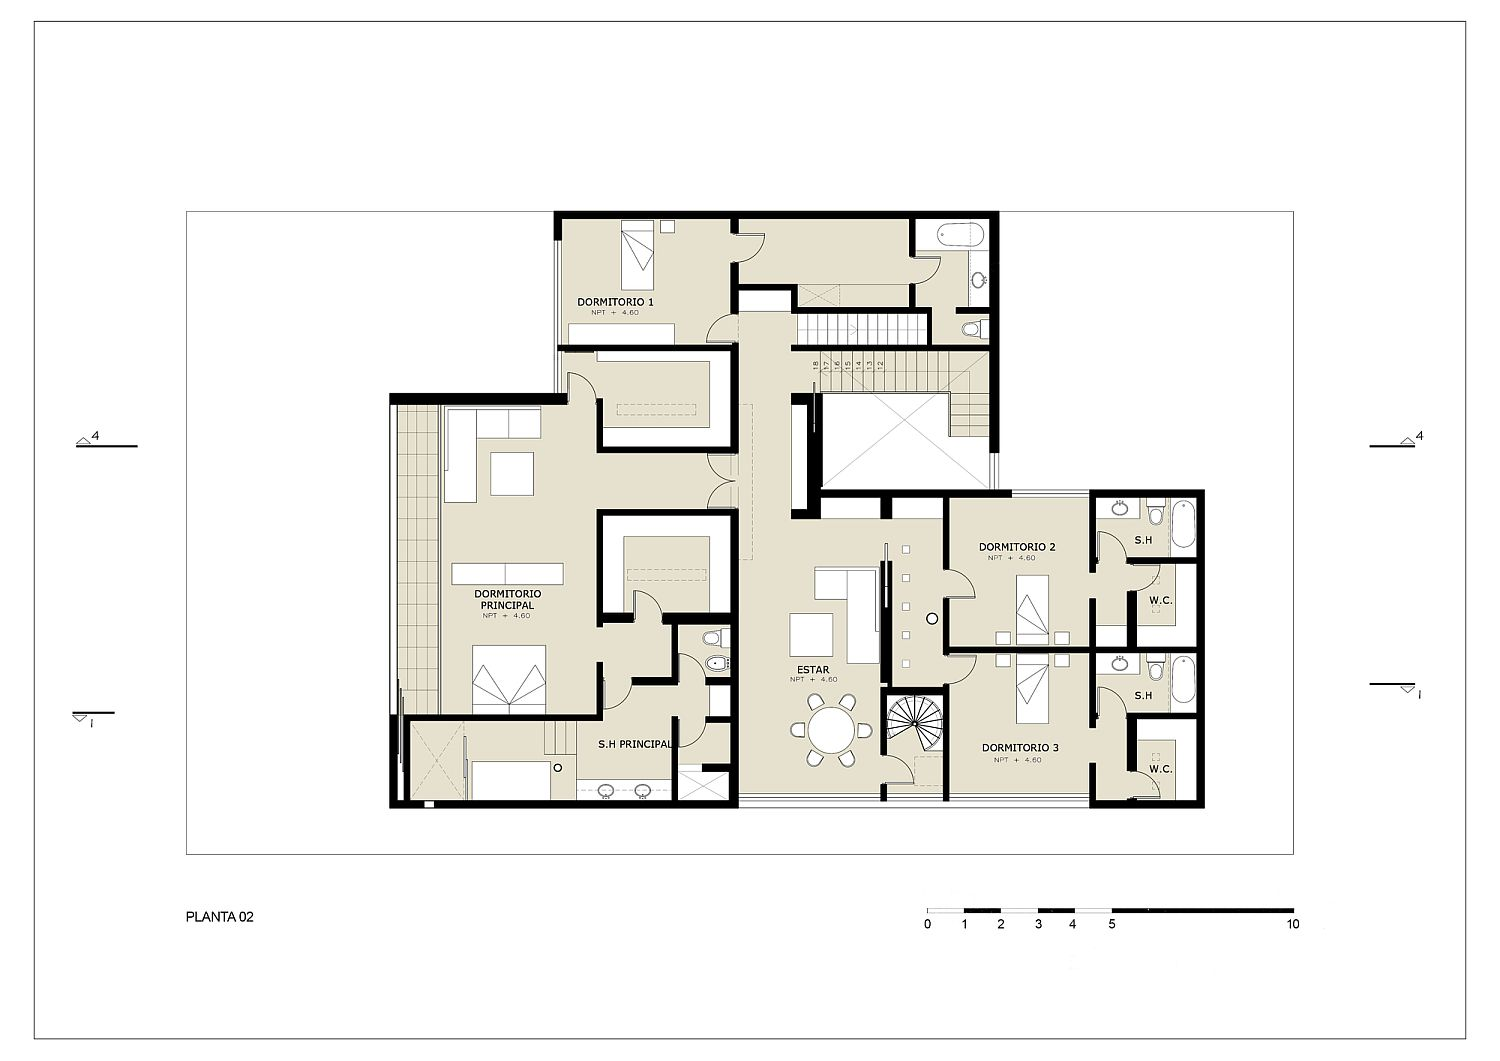 Private level floor plan of House M in Lima